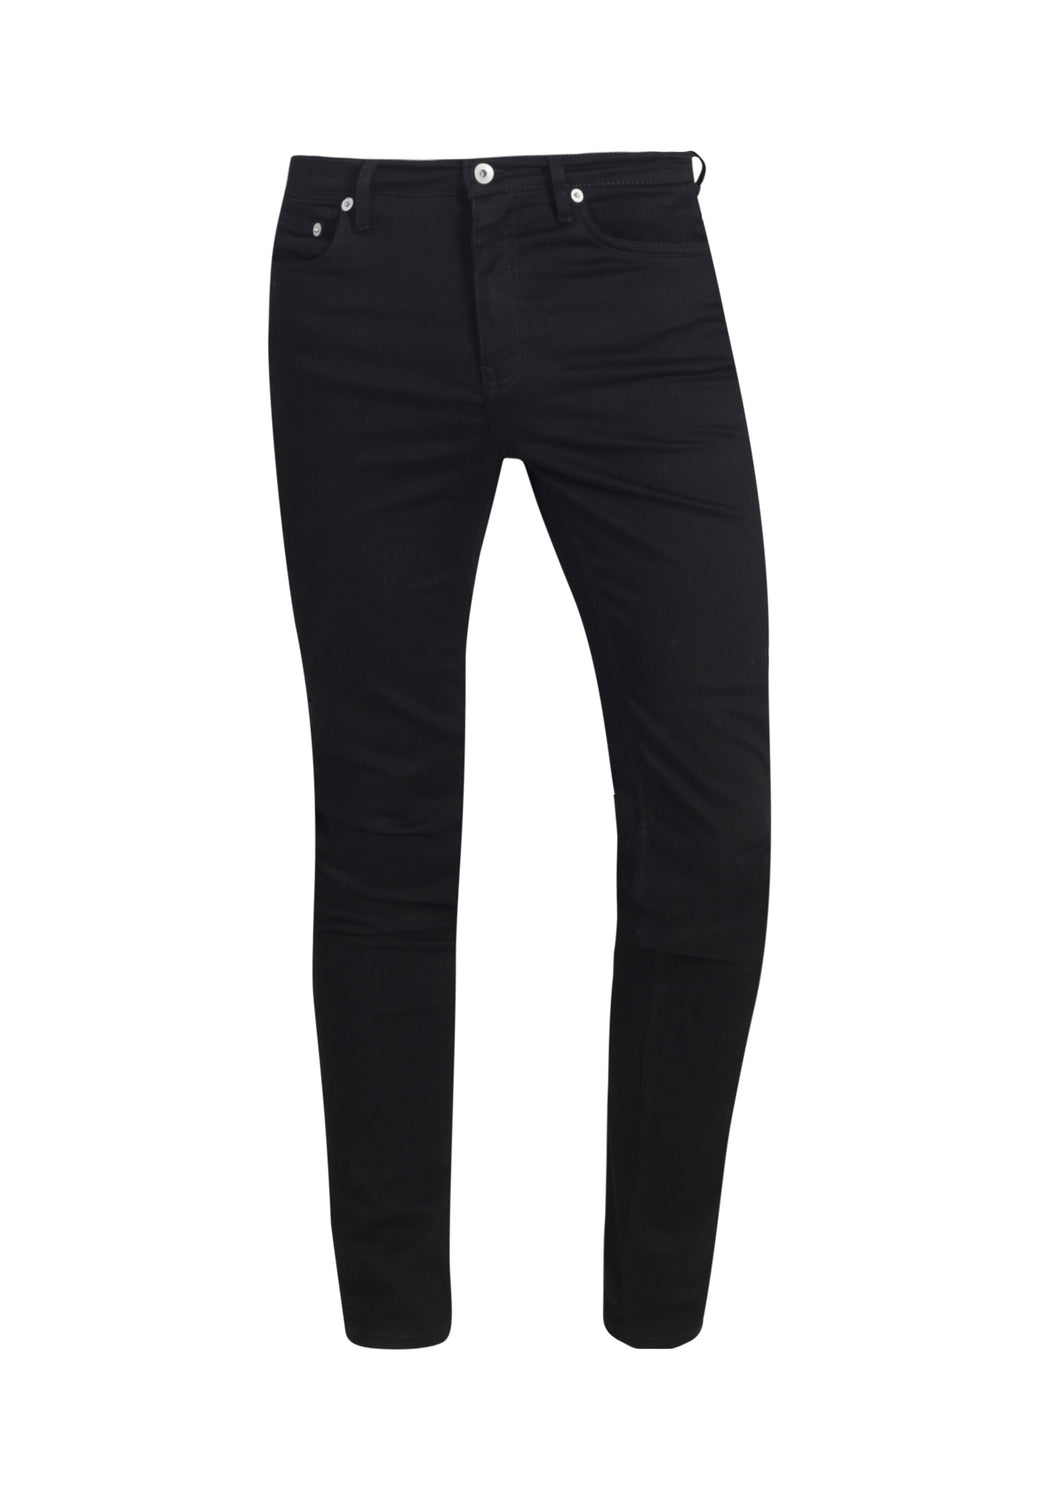 Recycled Organic Flex Black Jet Denim Classic Skinny Jeans - Monkee Genes Organic Jeans Denim - Organic Flex Men's Jeans Monkee Genes Official  Monkee Genes Official